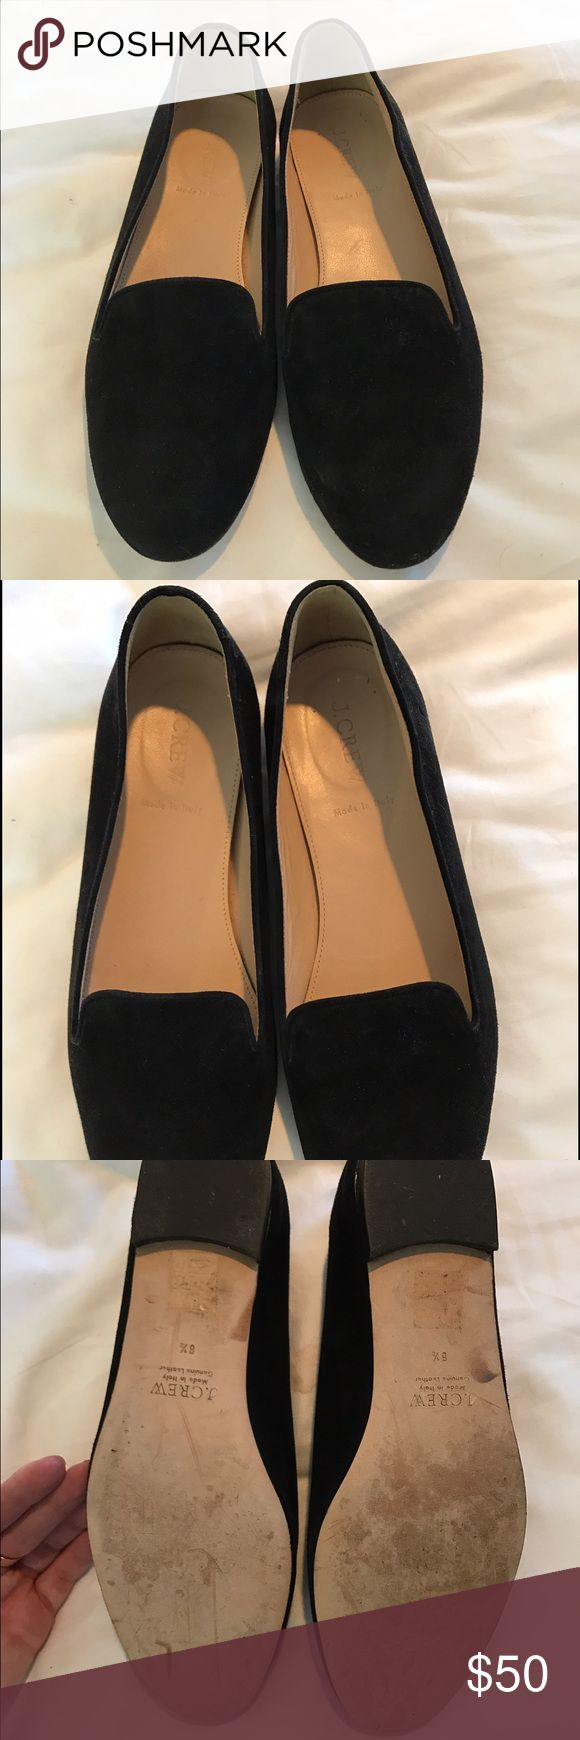 J. Crew black suede loafers Beautifully kept black suede loafers! Great for work or any casual every day wear. Super comfortable and easy to wear. Lightly worn, no scuffs or markings on the suede. J. Crew Shoes Flats & Loafers